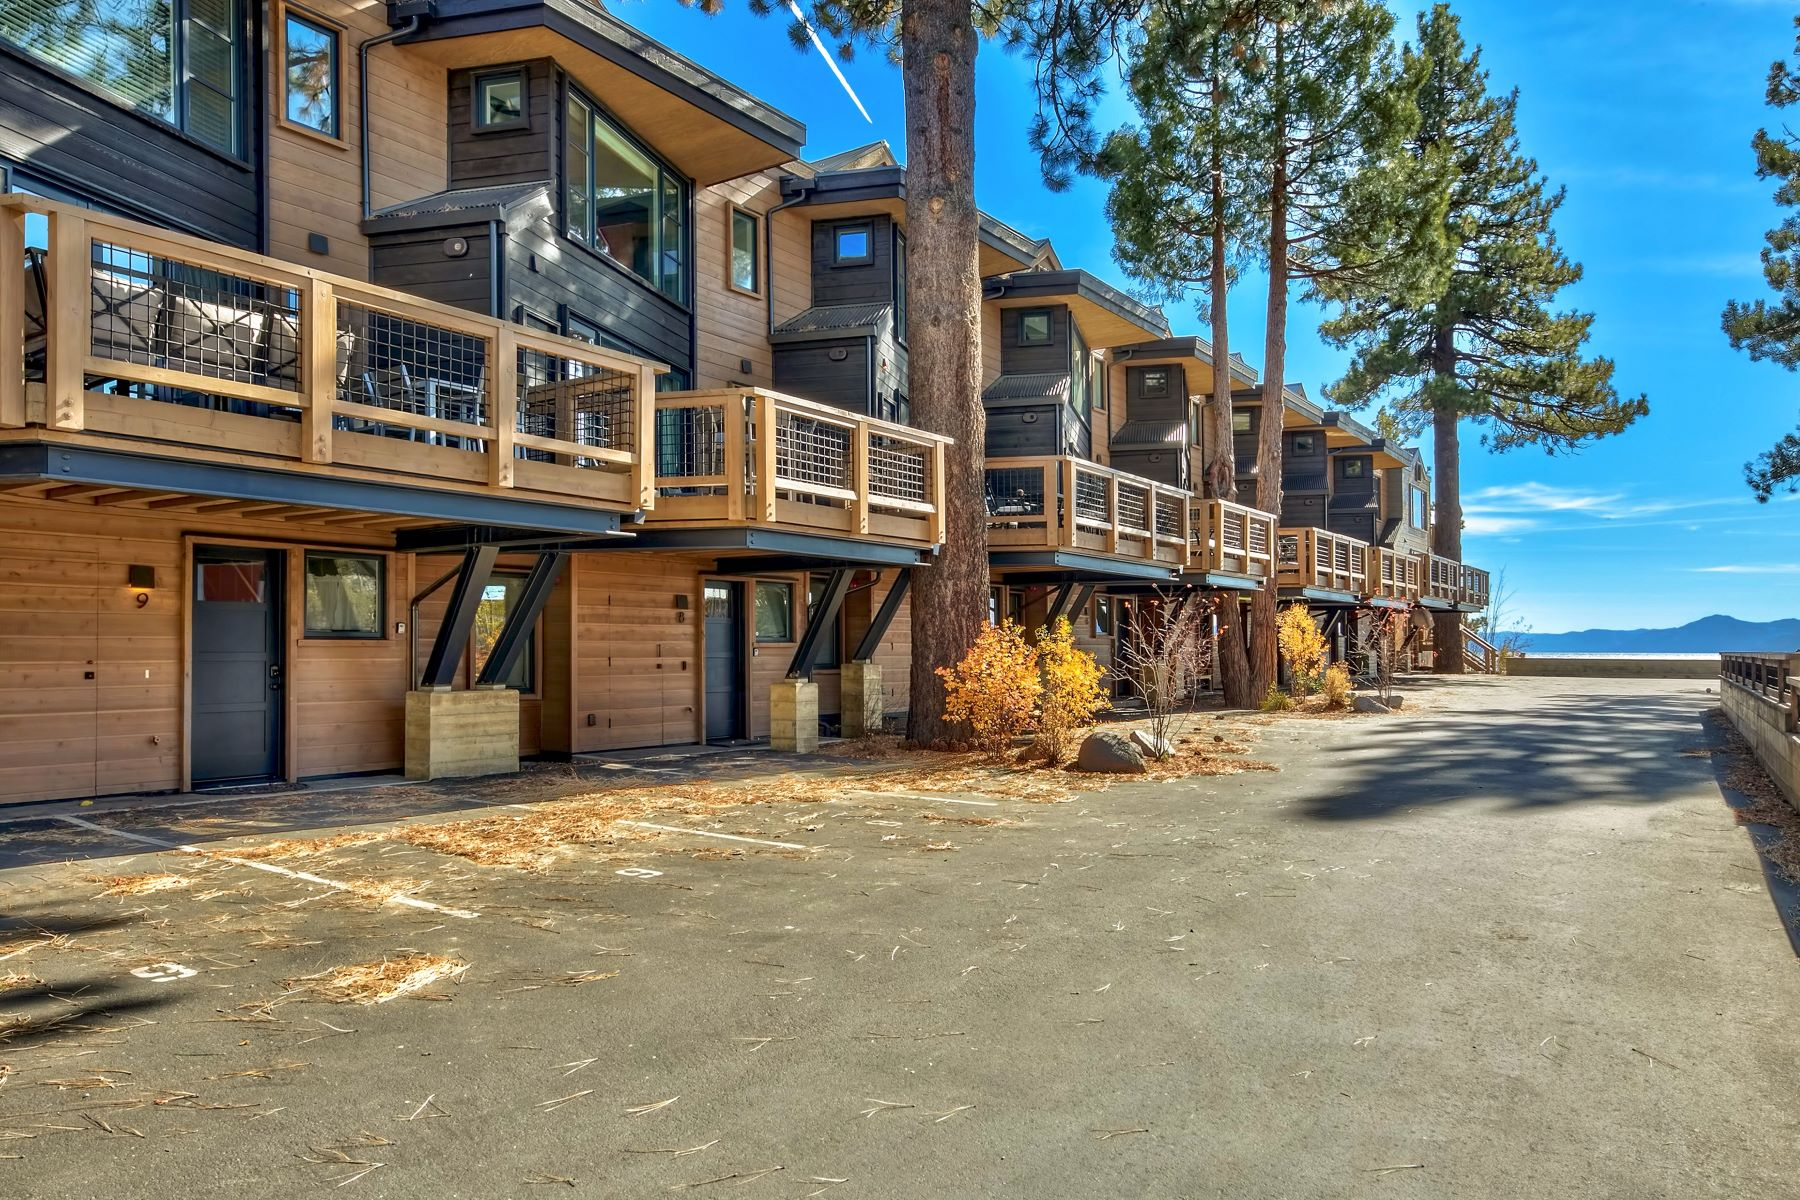 Property for Active at 8308 N Lake Blvd, Unit 9, Kings Beach CA 96143 8308 North Lake Blvd. #9 Kings Beach, California 96143 United States